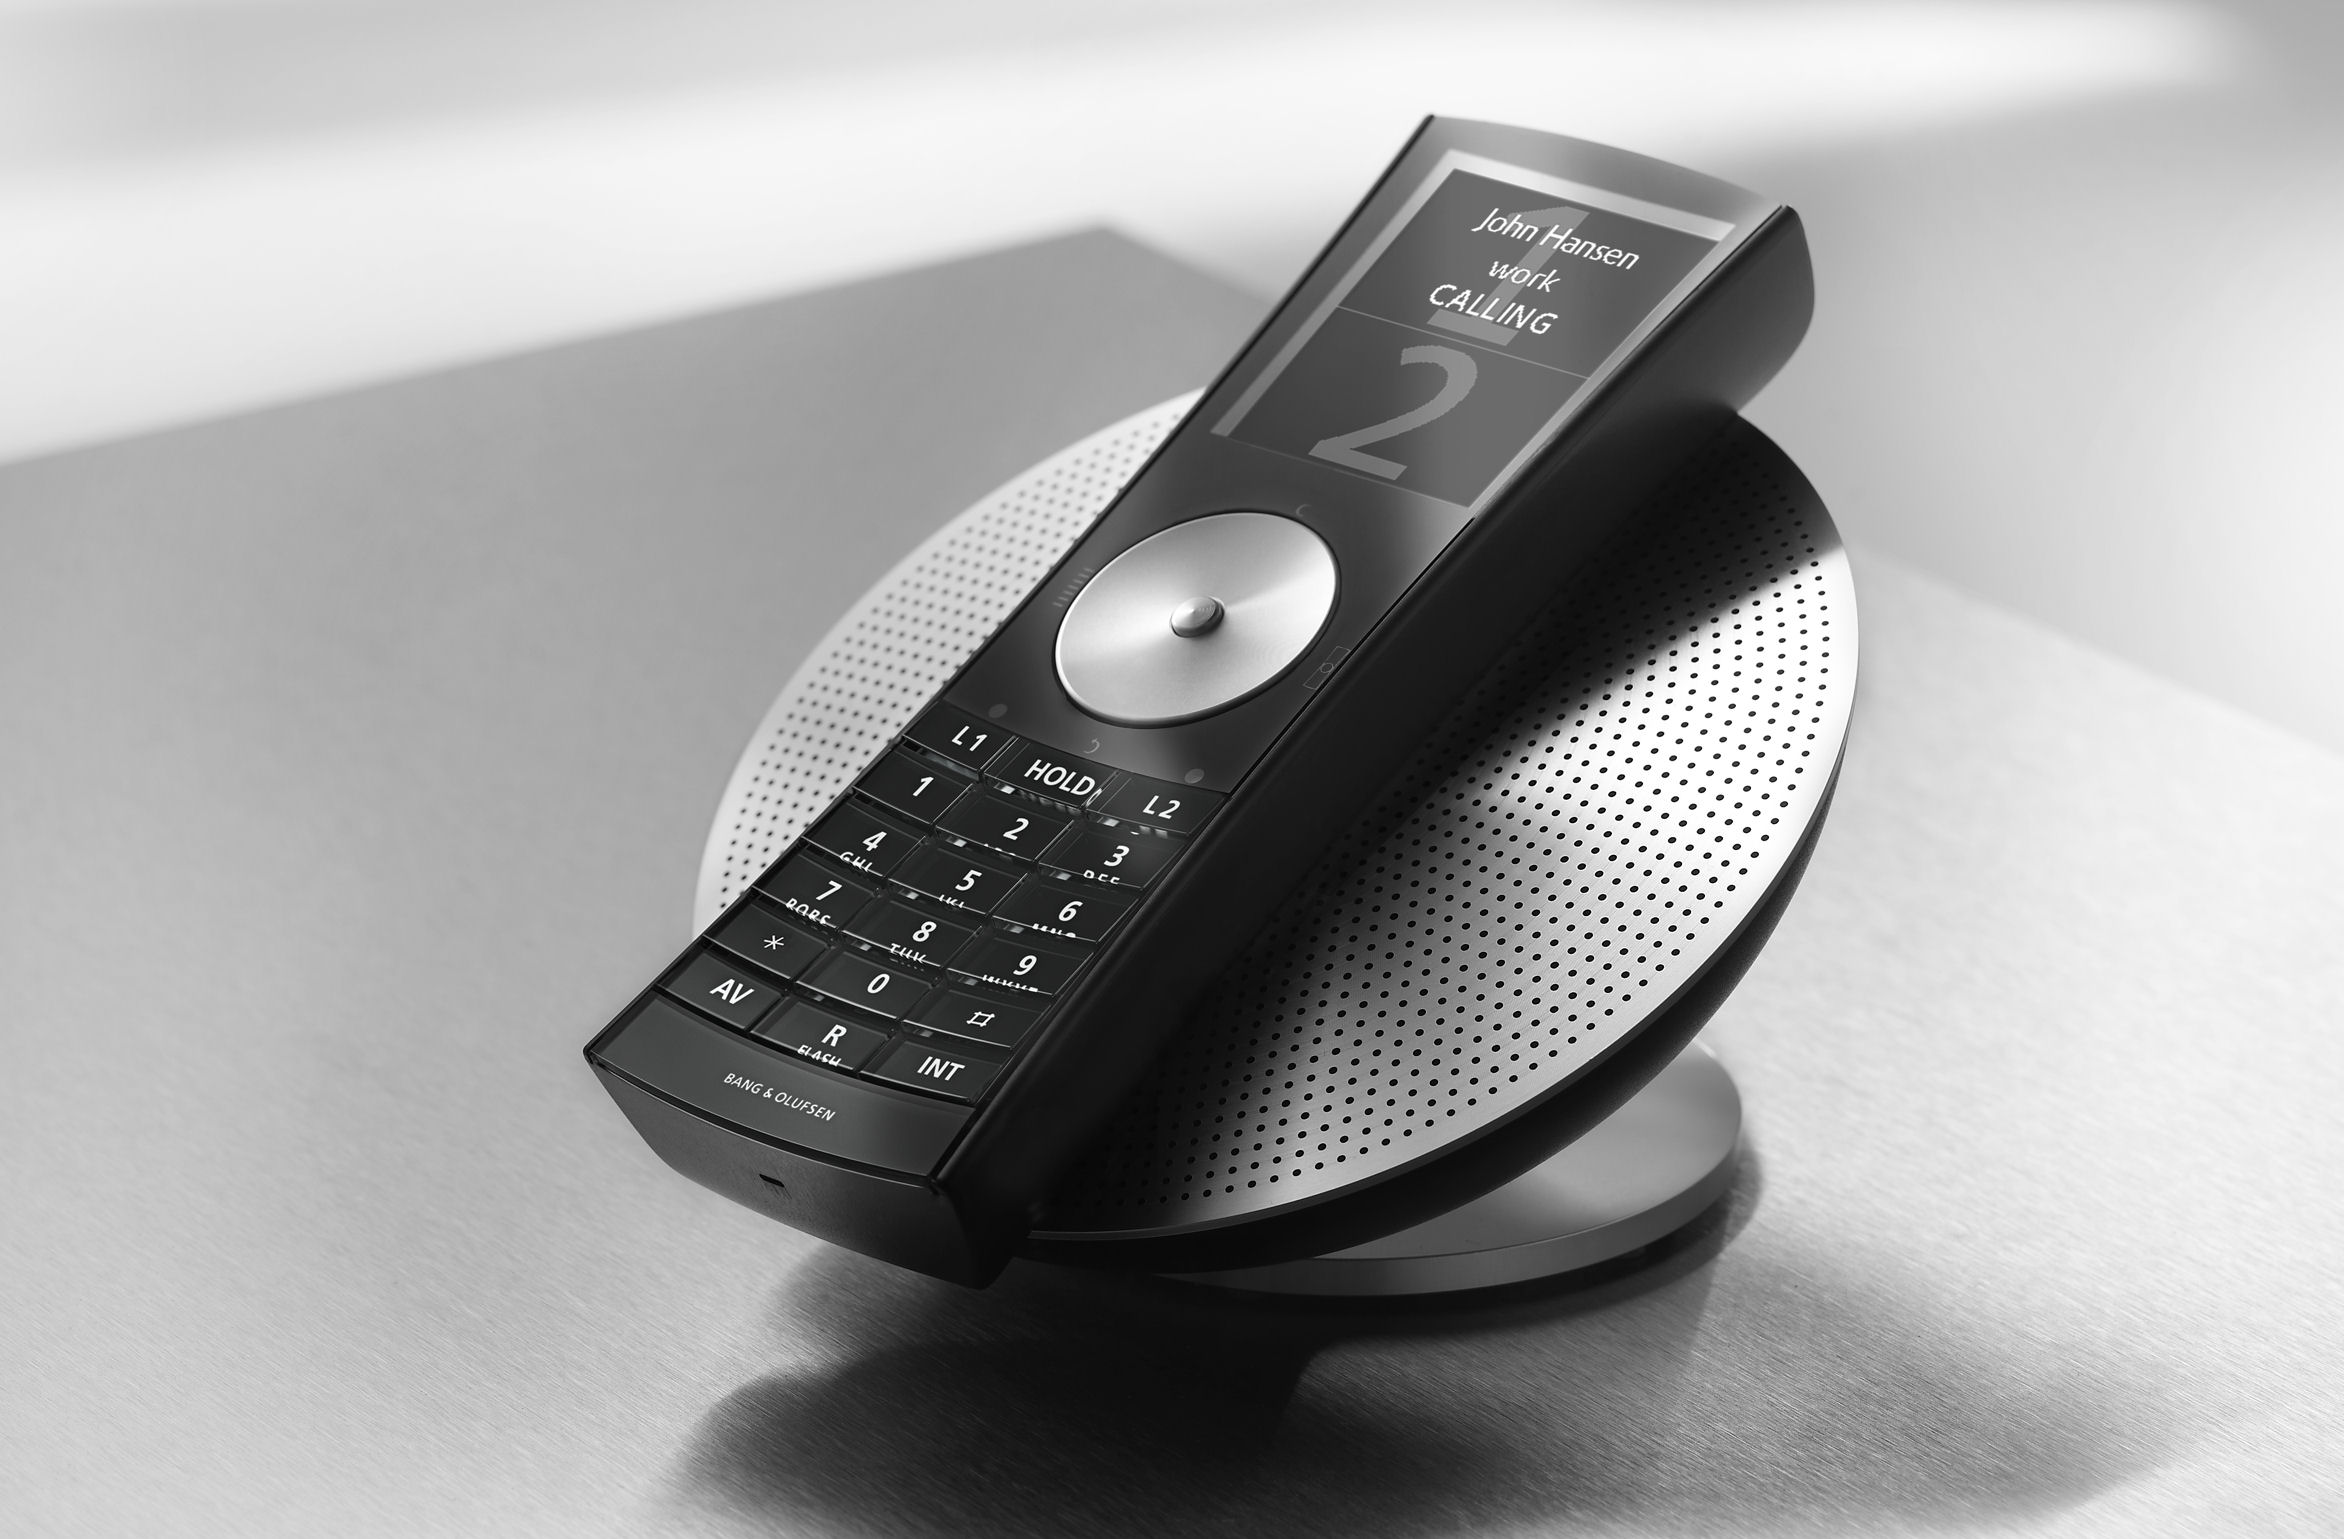 Bang Olufsen Beocom 5 Home Phone Also Does Voip